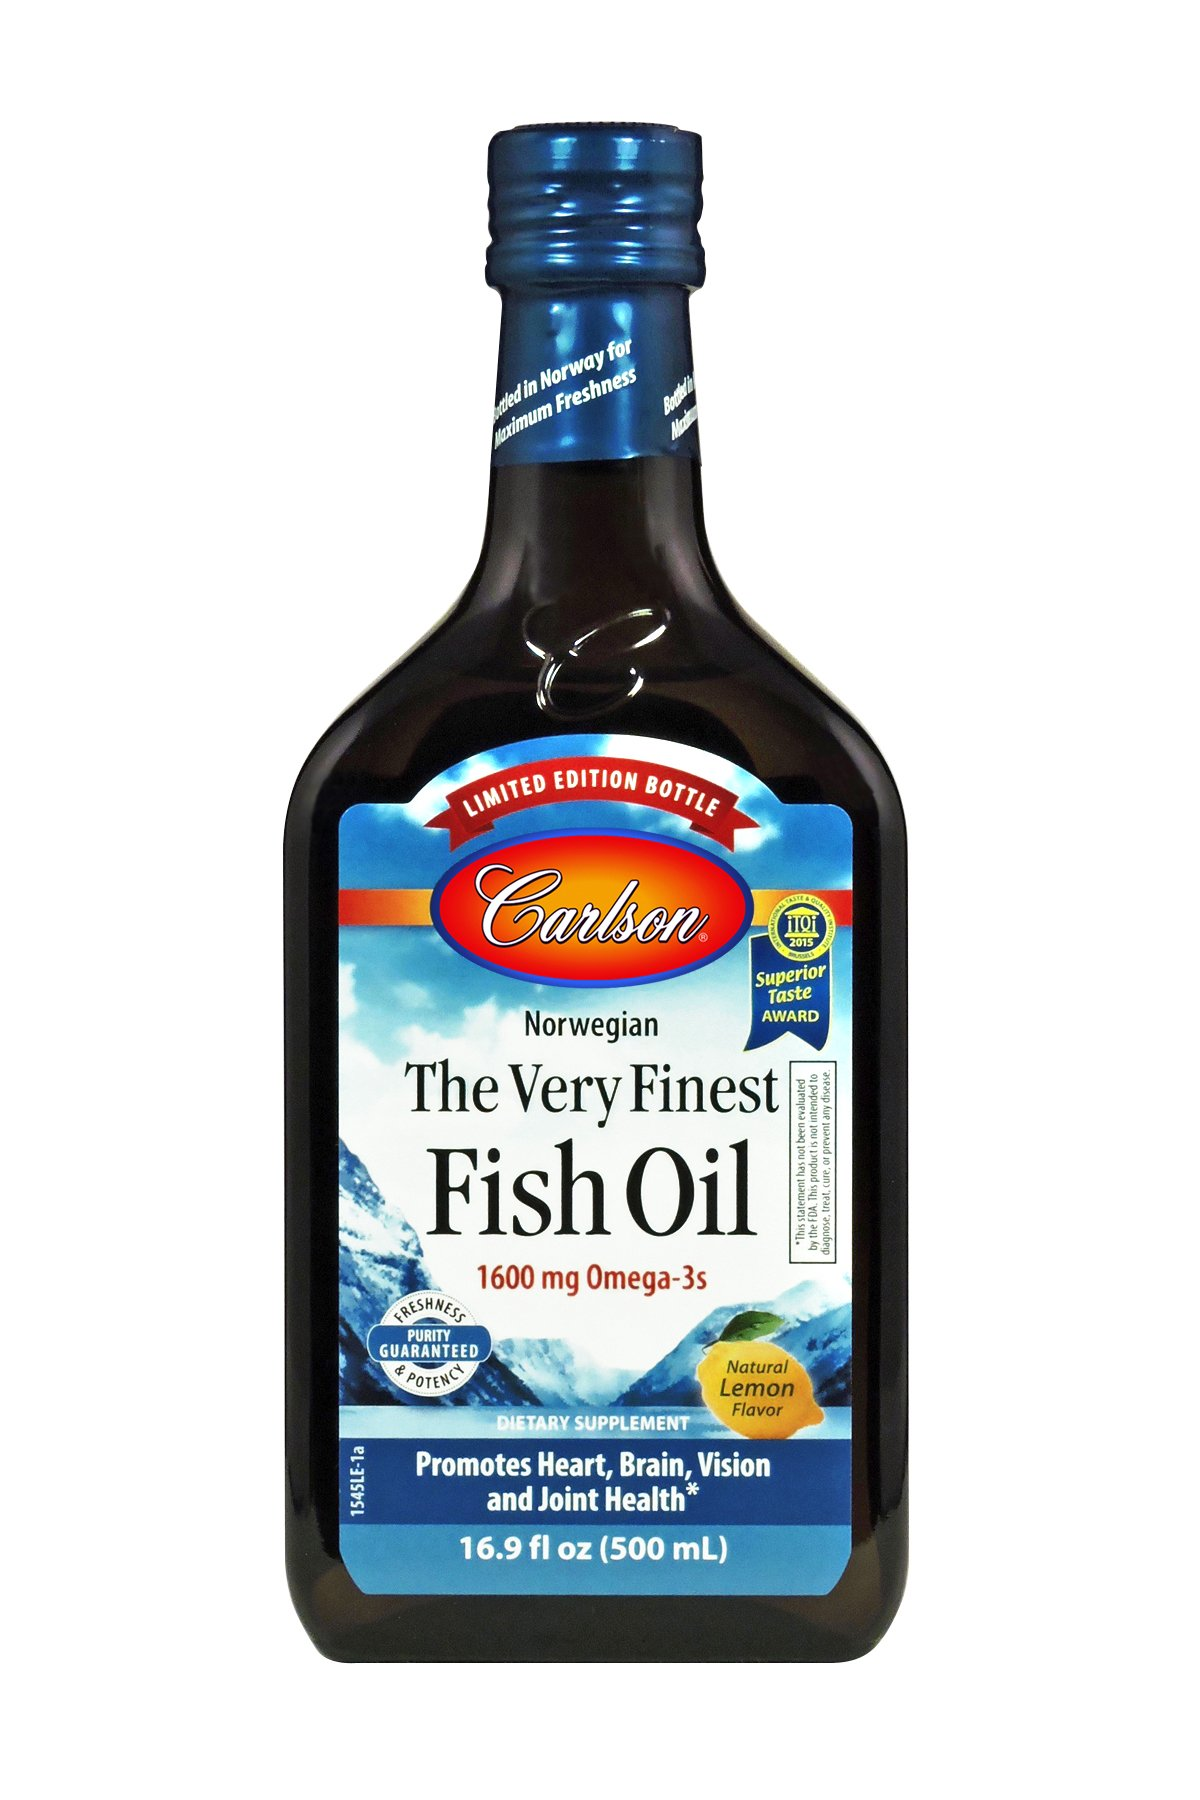 Carlson Limited Edition The Very Finest Fish Oil, Norwegian, Lemon, 1,600 mg Omega-3s, 500 mL